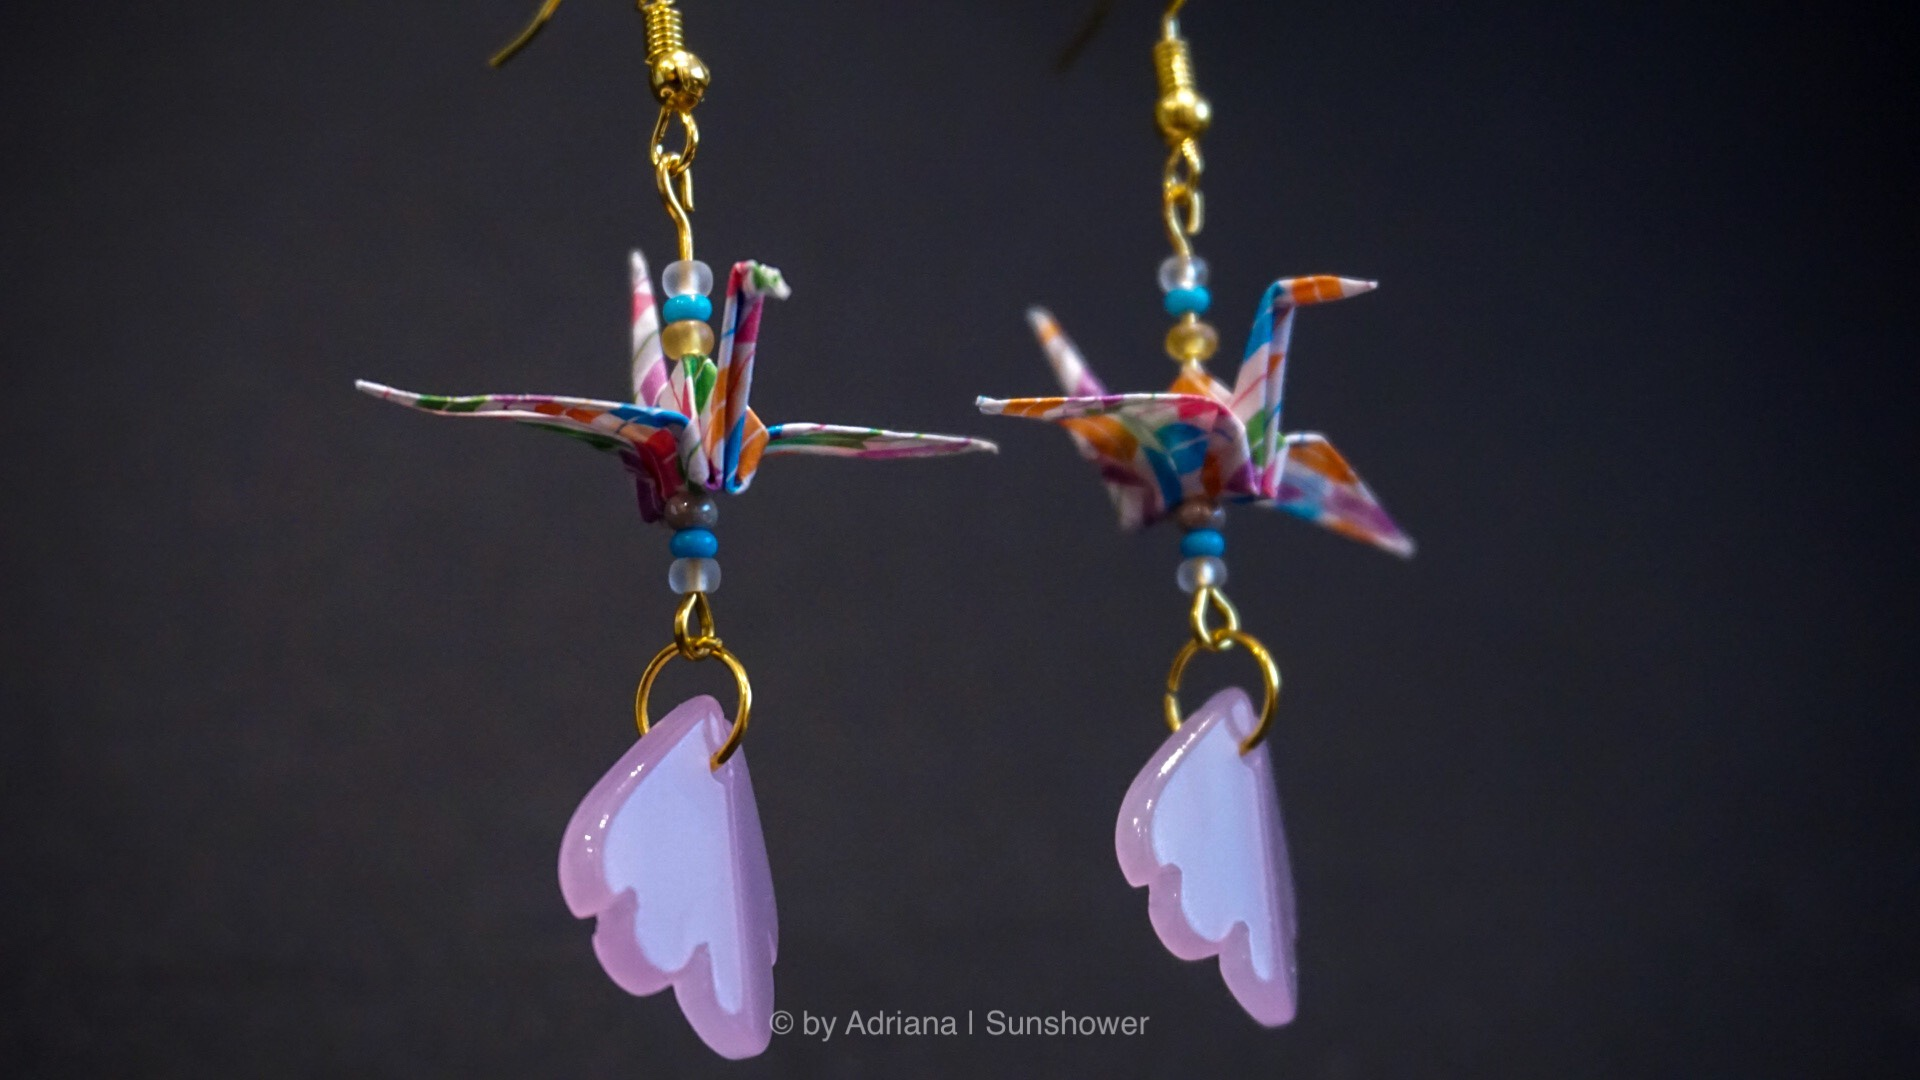 Colorful Crane Earrings